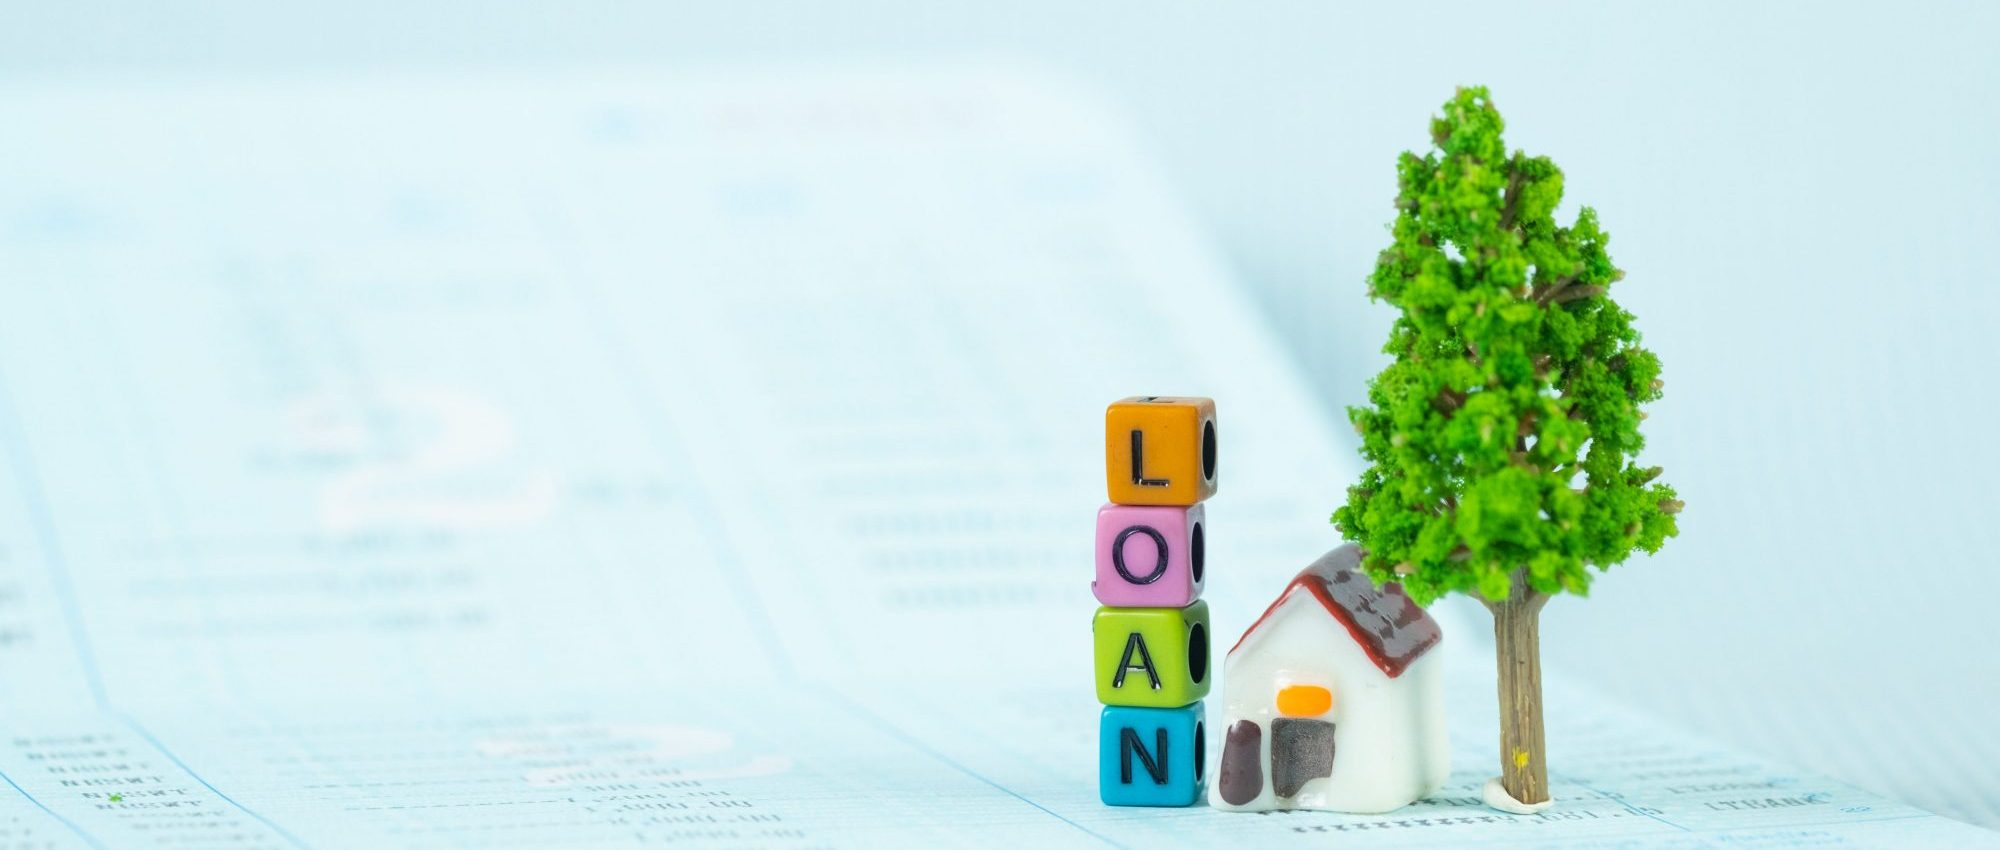 LOAN text and small model house and little tree with notebook, savings banking, loan for house and real estate concept idea.